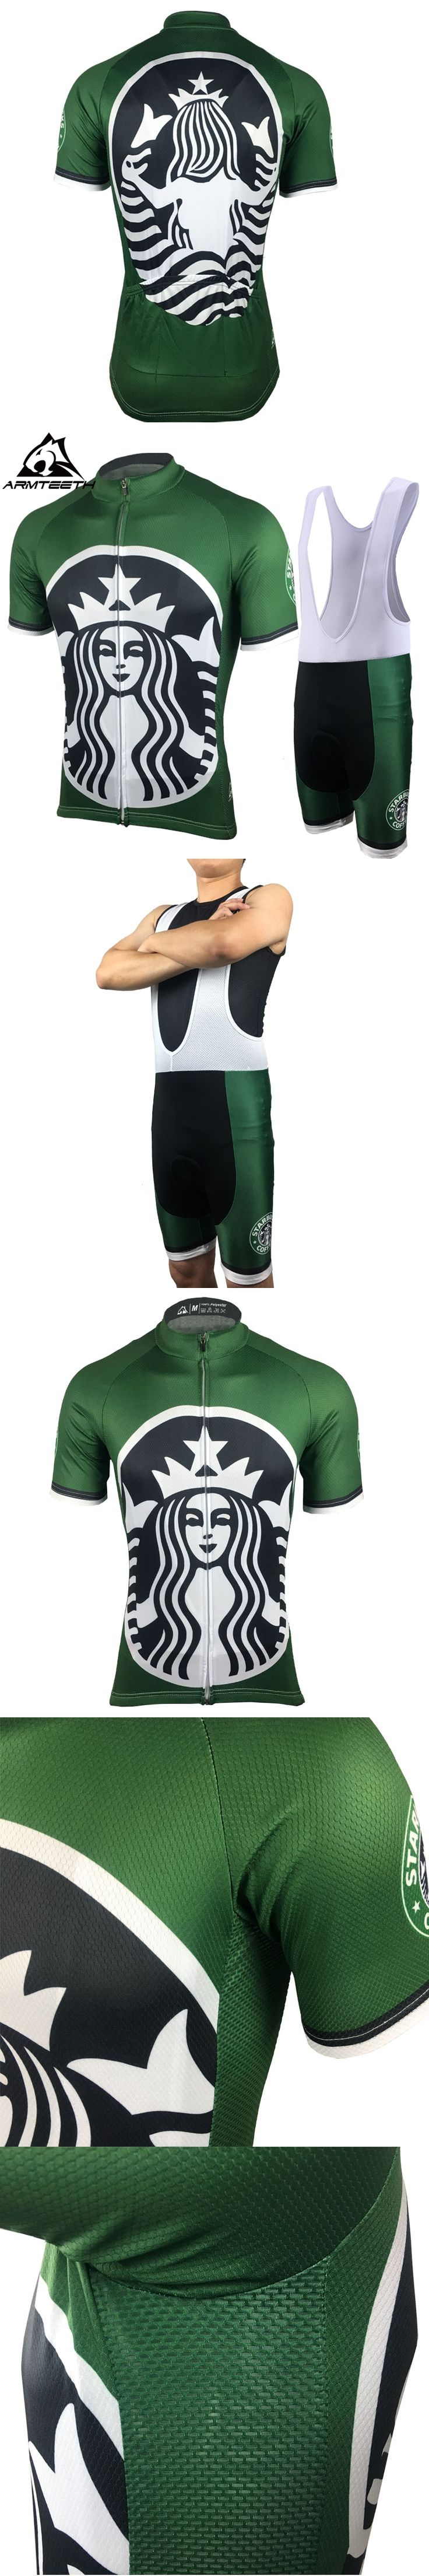 2017 Hot Sale Pro Men Cycling Jersey Set Breathable MTB Clothes Quick Dry Bicycle Summer Sportswear Bike Jerseys Ropa Ciclismo